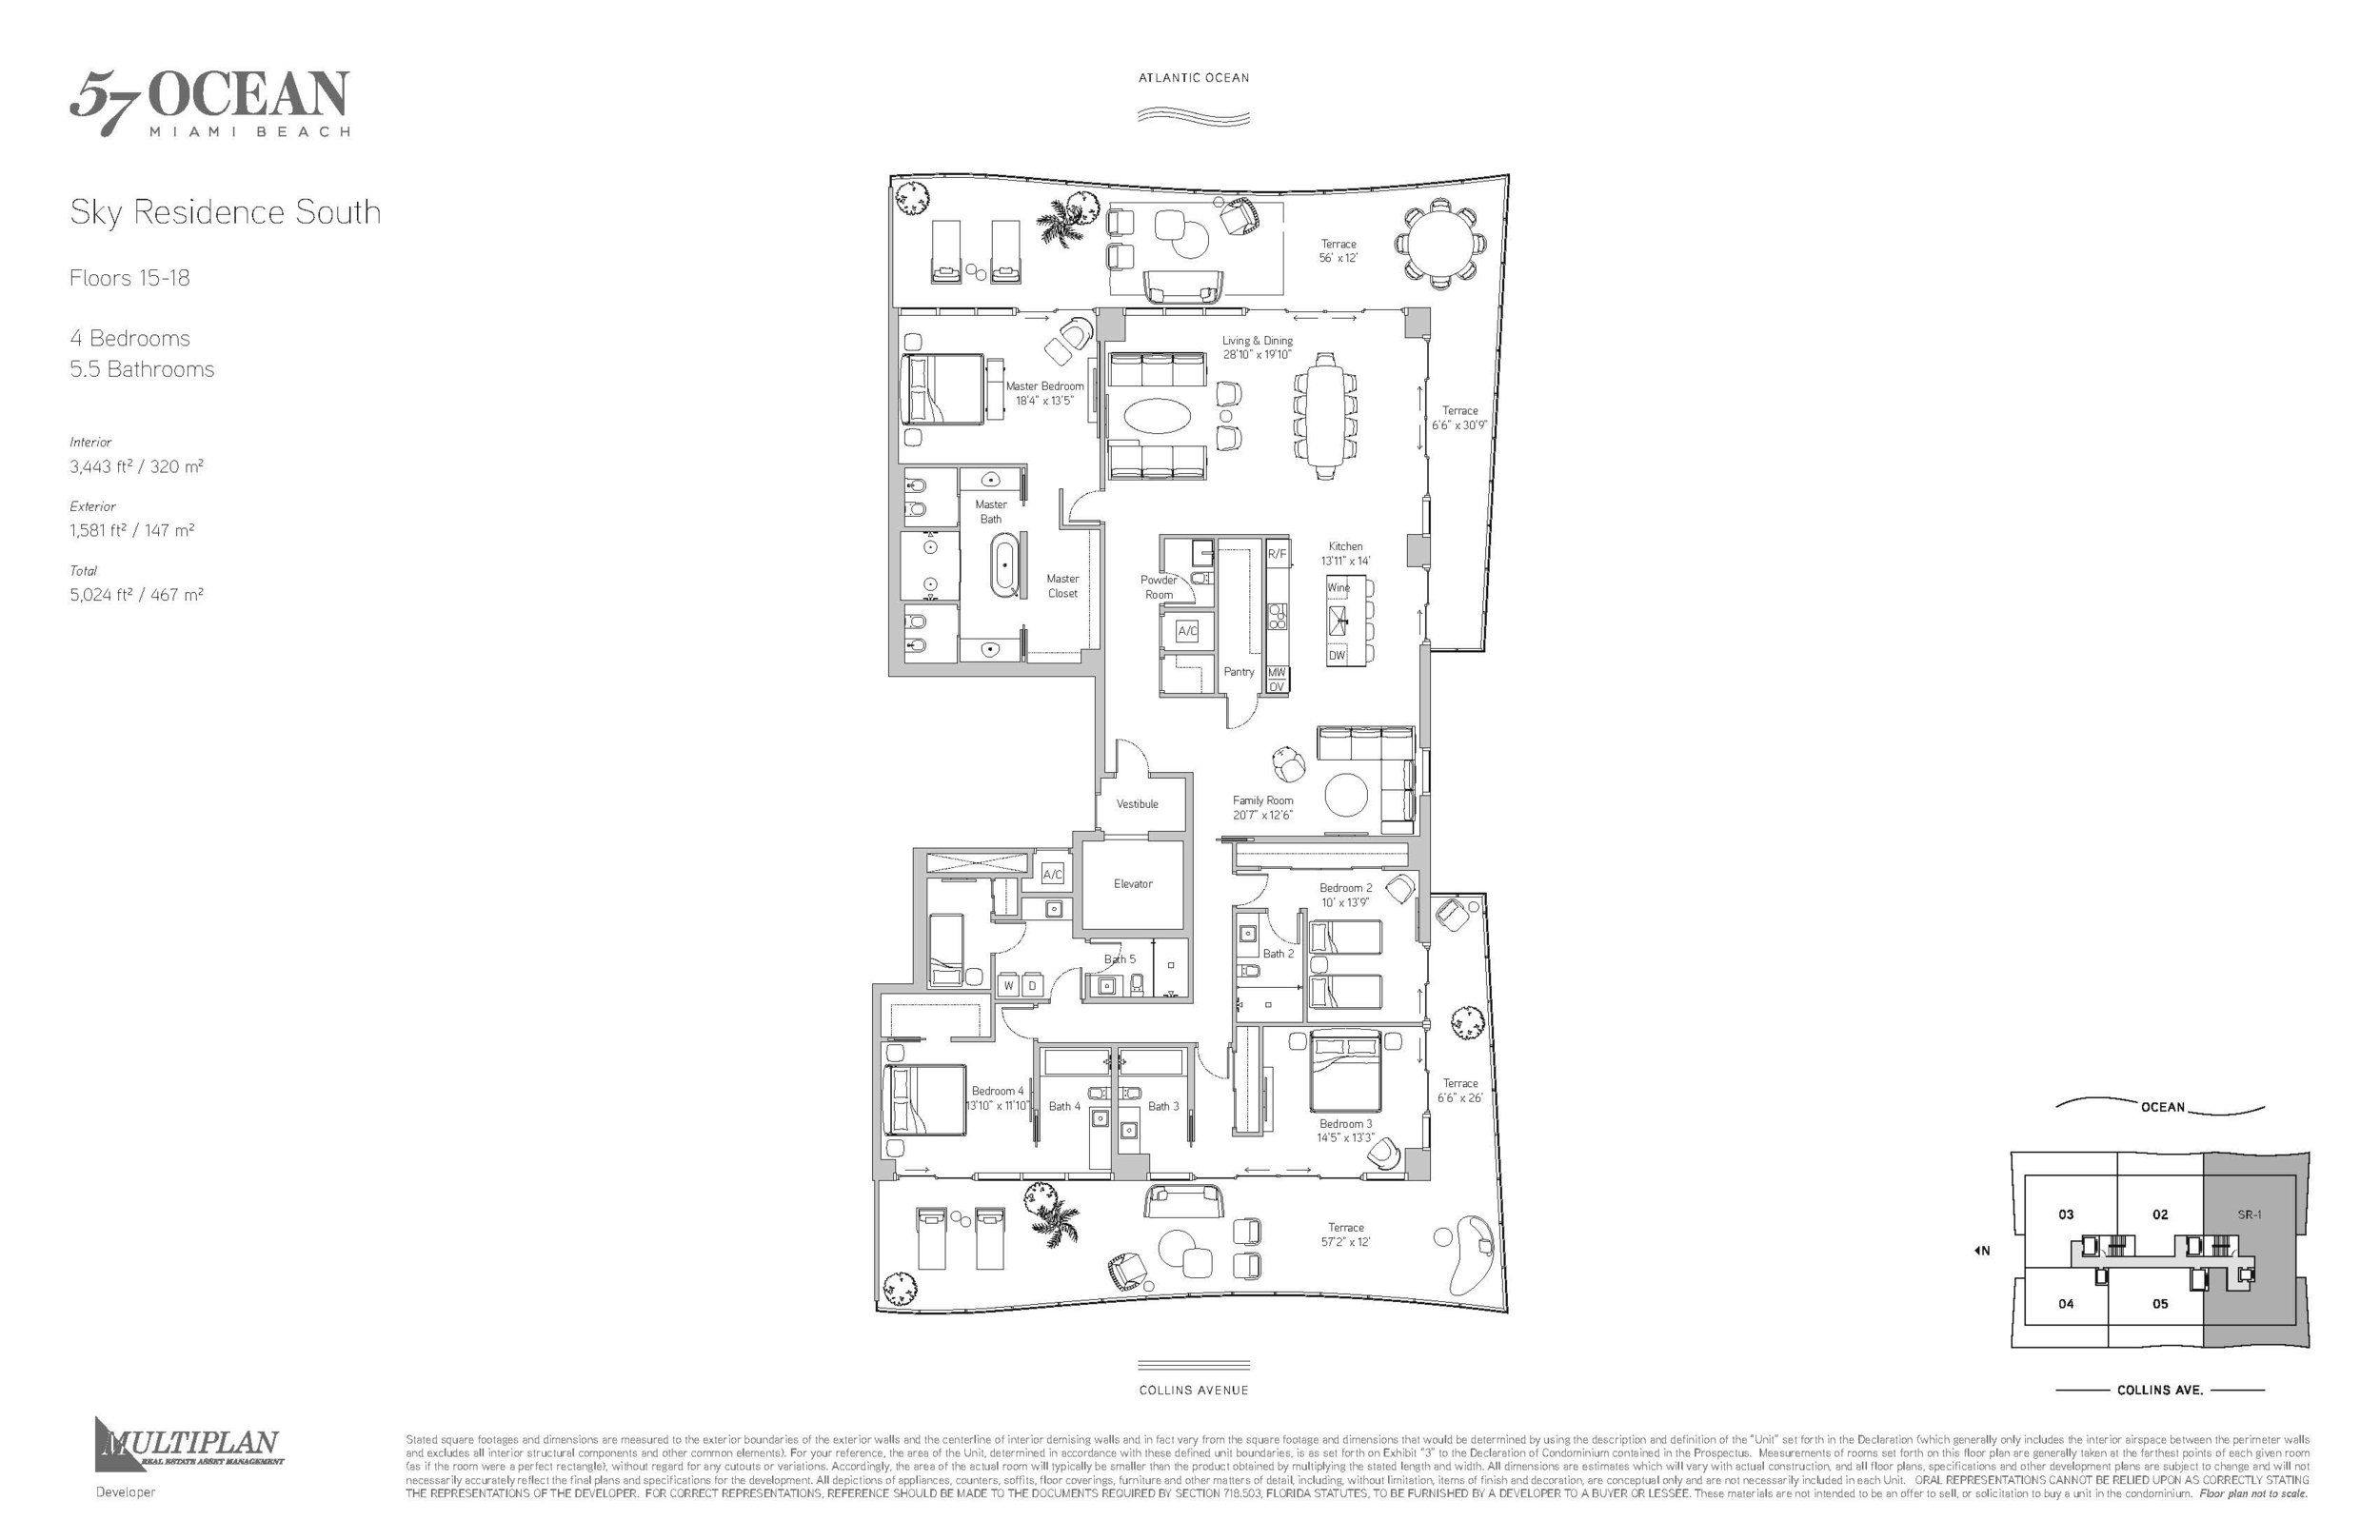 57 Ocean Floor Plans - 4 Bedroom Sky Residence South